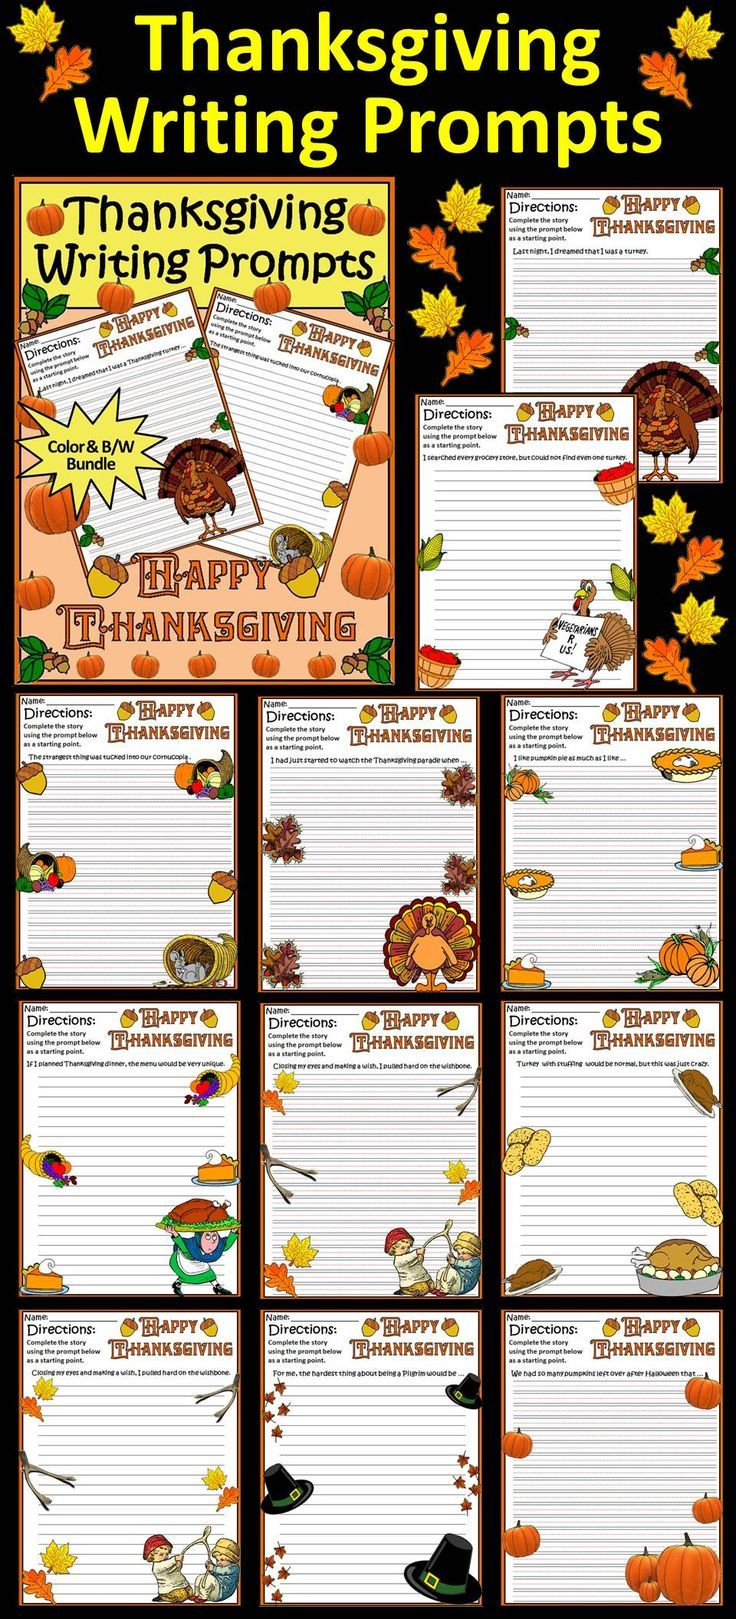 Thanksgiving Writing Prompts: This Thanksgiving writing packet contains ten different holiday story starters with both primary and regular line formats. Contents include: * Ten Thanksgiving Writing Prompts on Primary Lined Paper * Ten Thanksgiving Writing Prompts on Regular Lined Paper * One Thanksgiving Blank Writing Page with Primary Lines * One Thanksgiving Blank Writing Page with Regular Lines #Thanksgiving #Writing #Activities #Teacherspayteachers